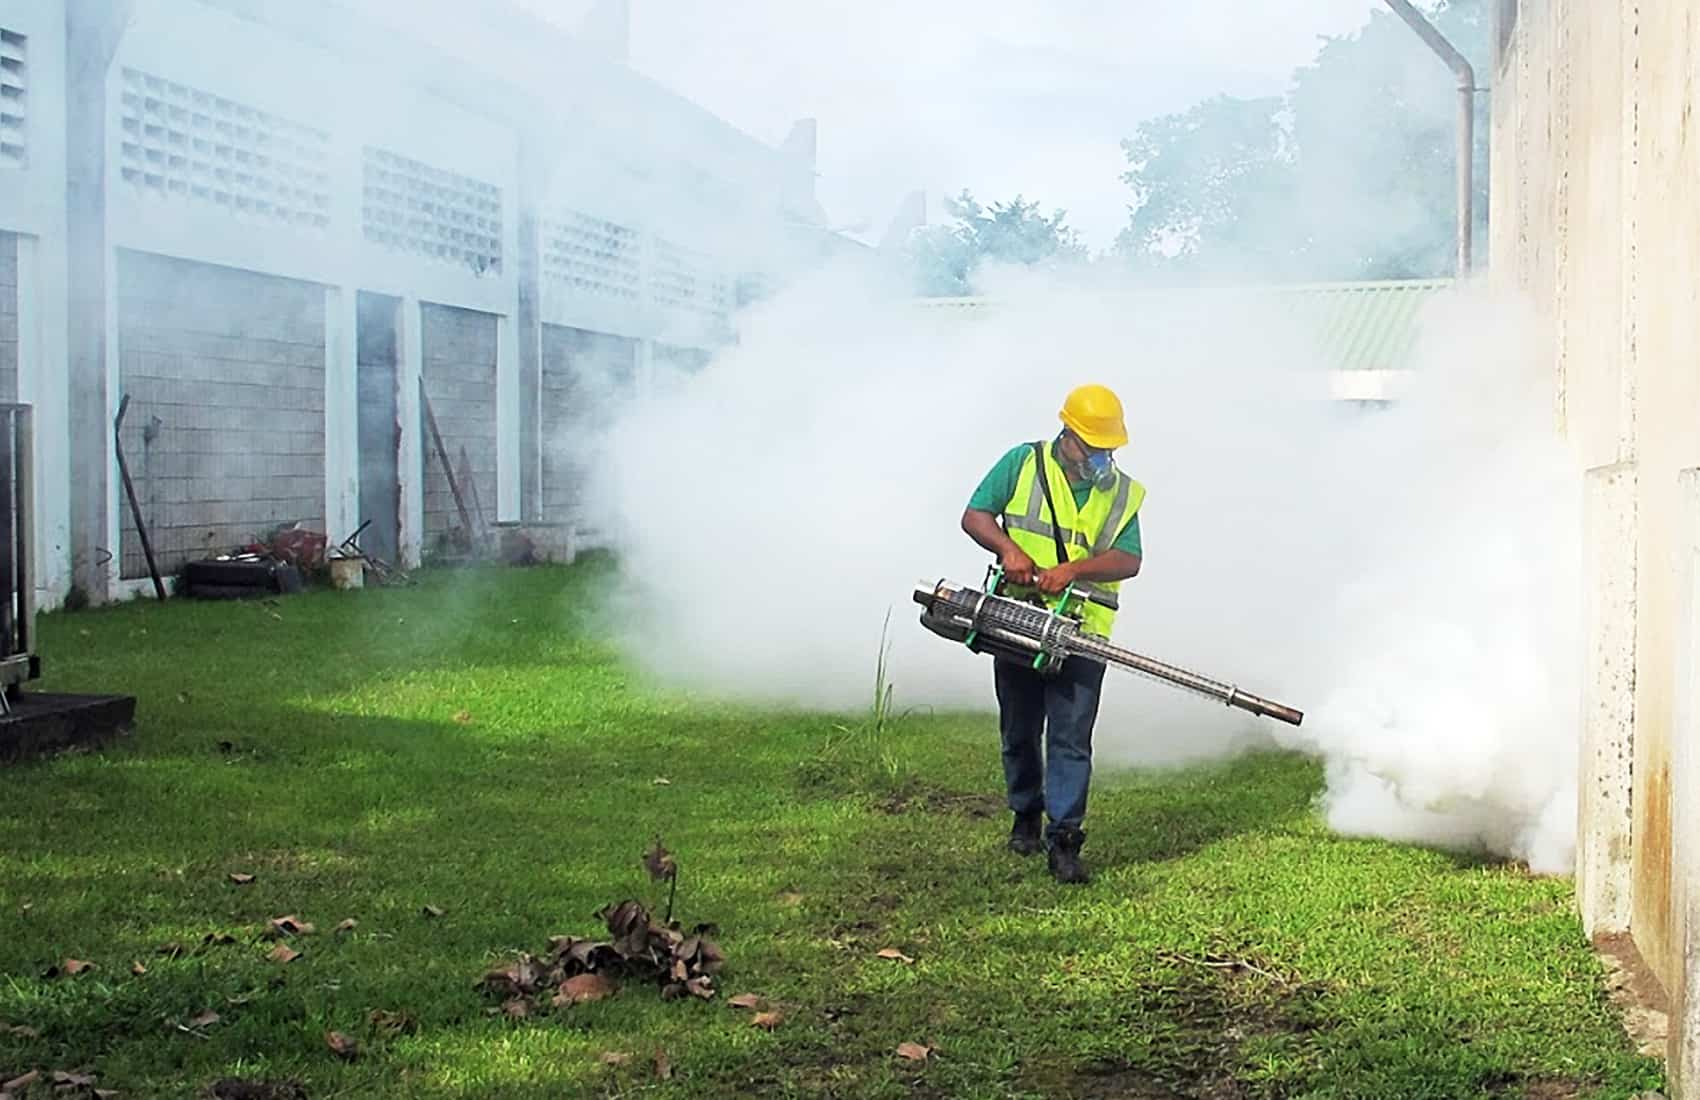 Fumigation against Zika in Guanacaste, Feb. 2016